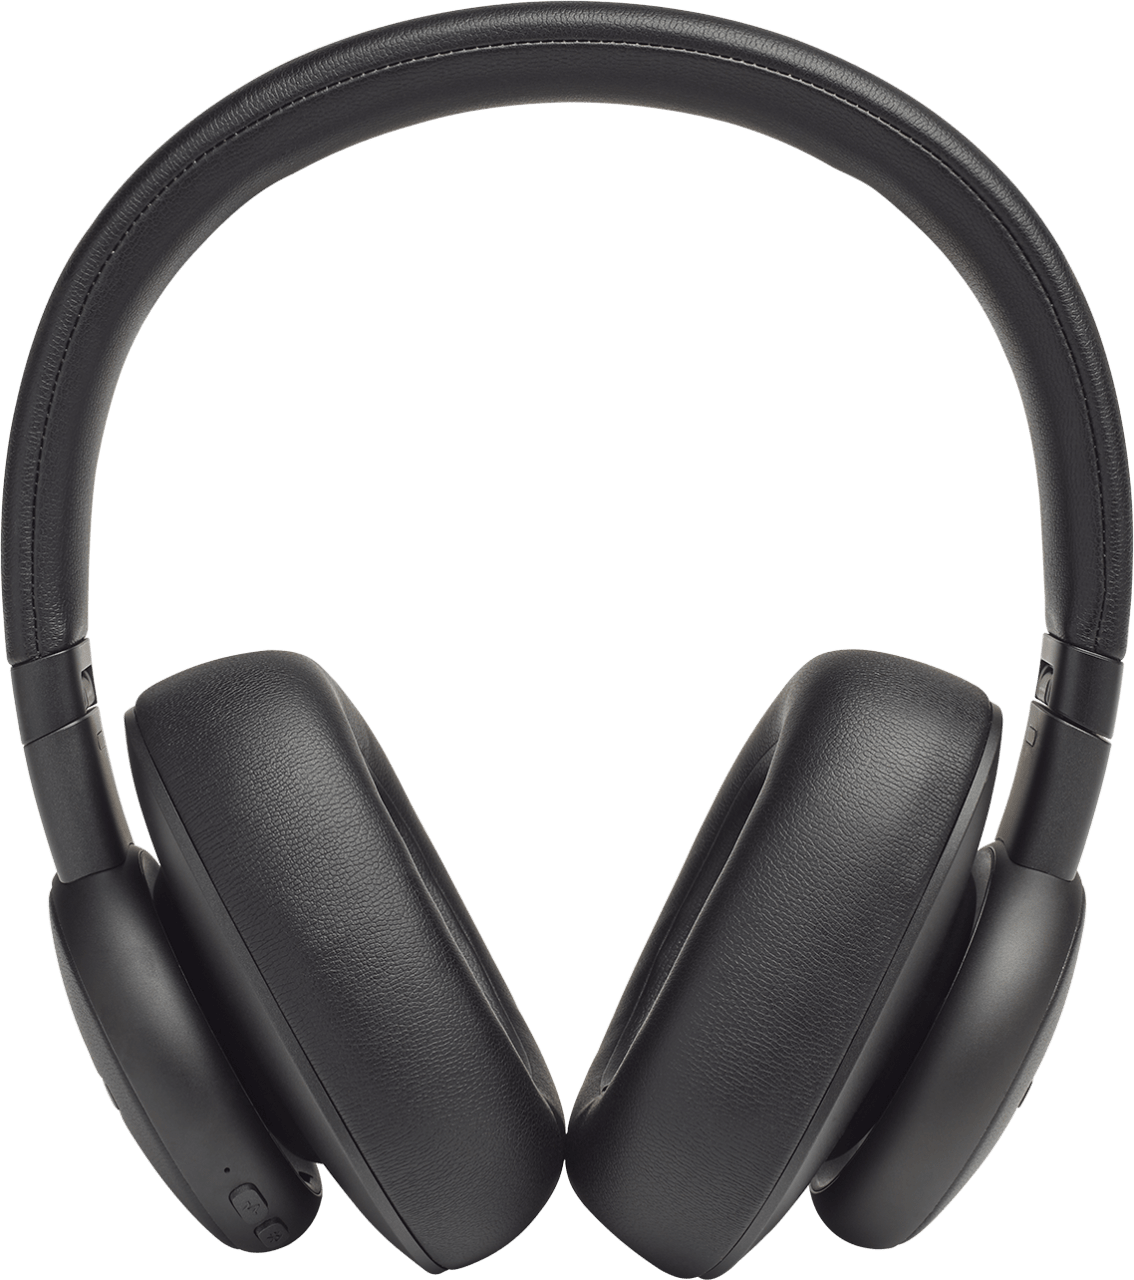 Schwarz Harman Kardon Fly ANC Over Ear.2